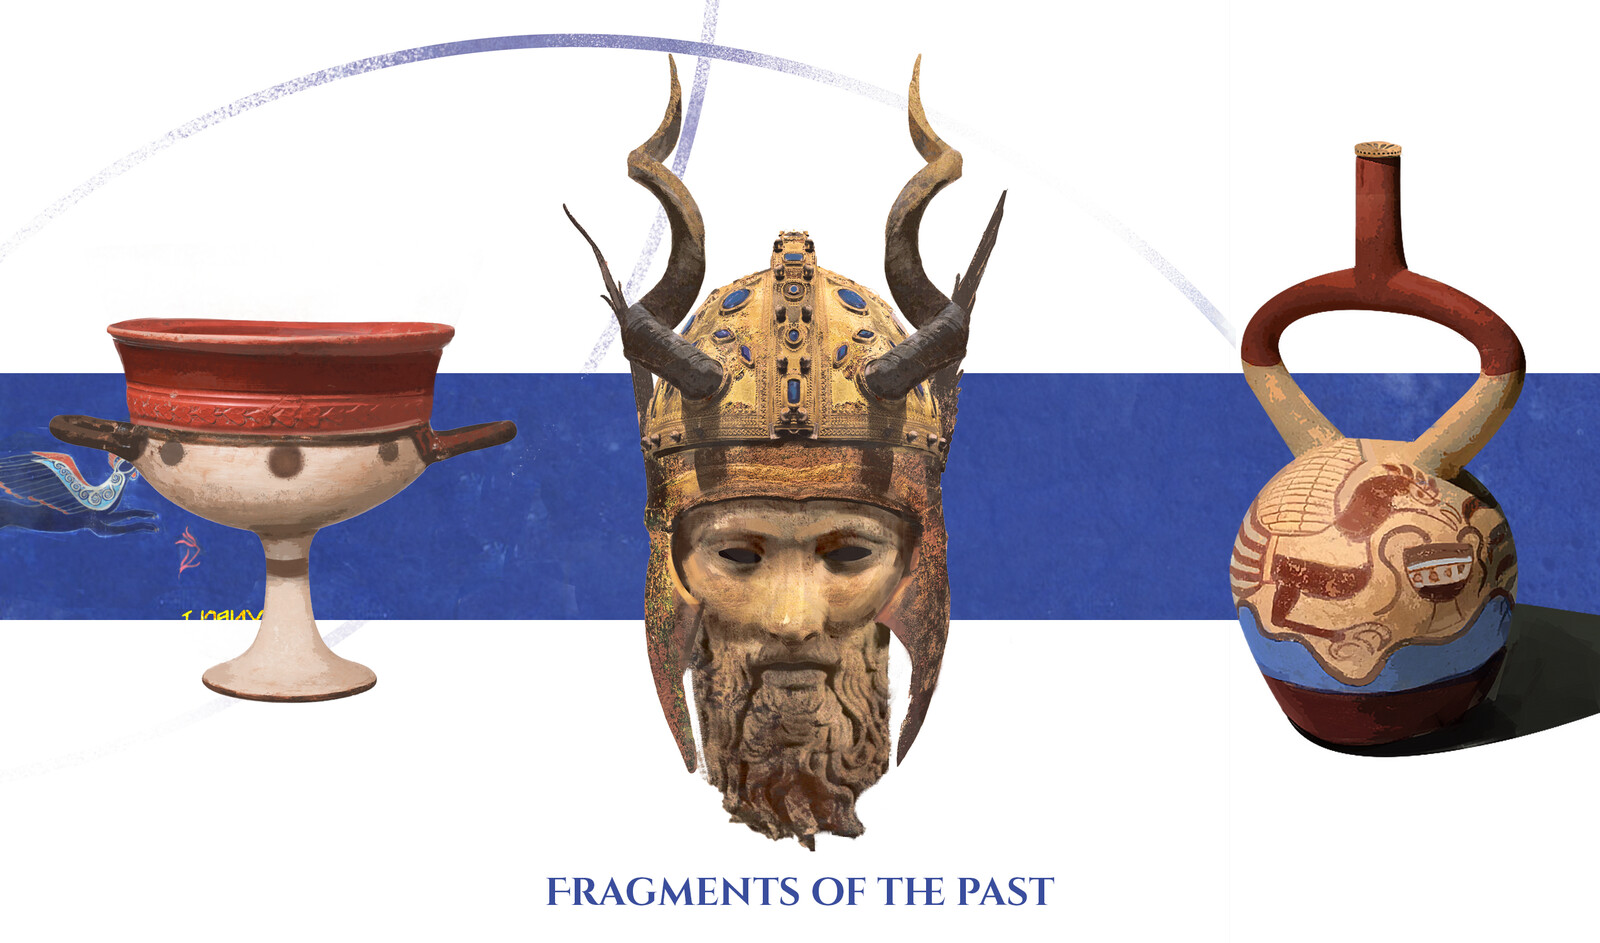 Six Artifacts from Fragments of the Past